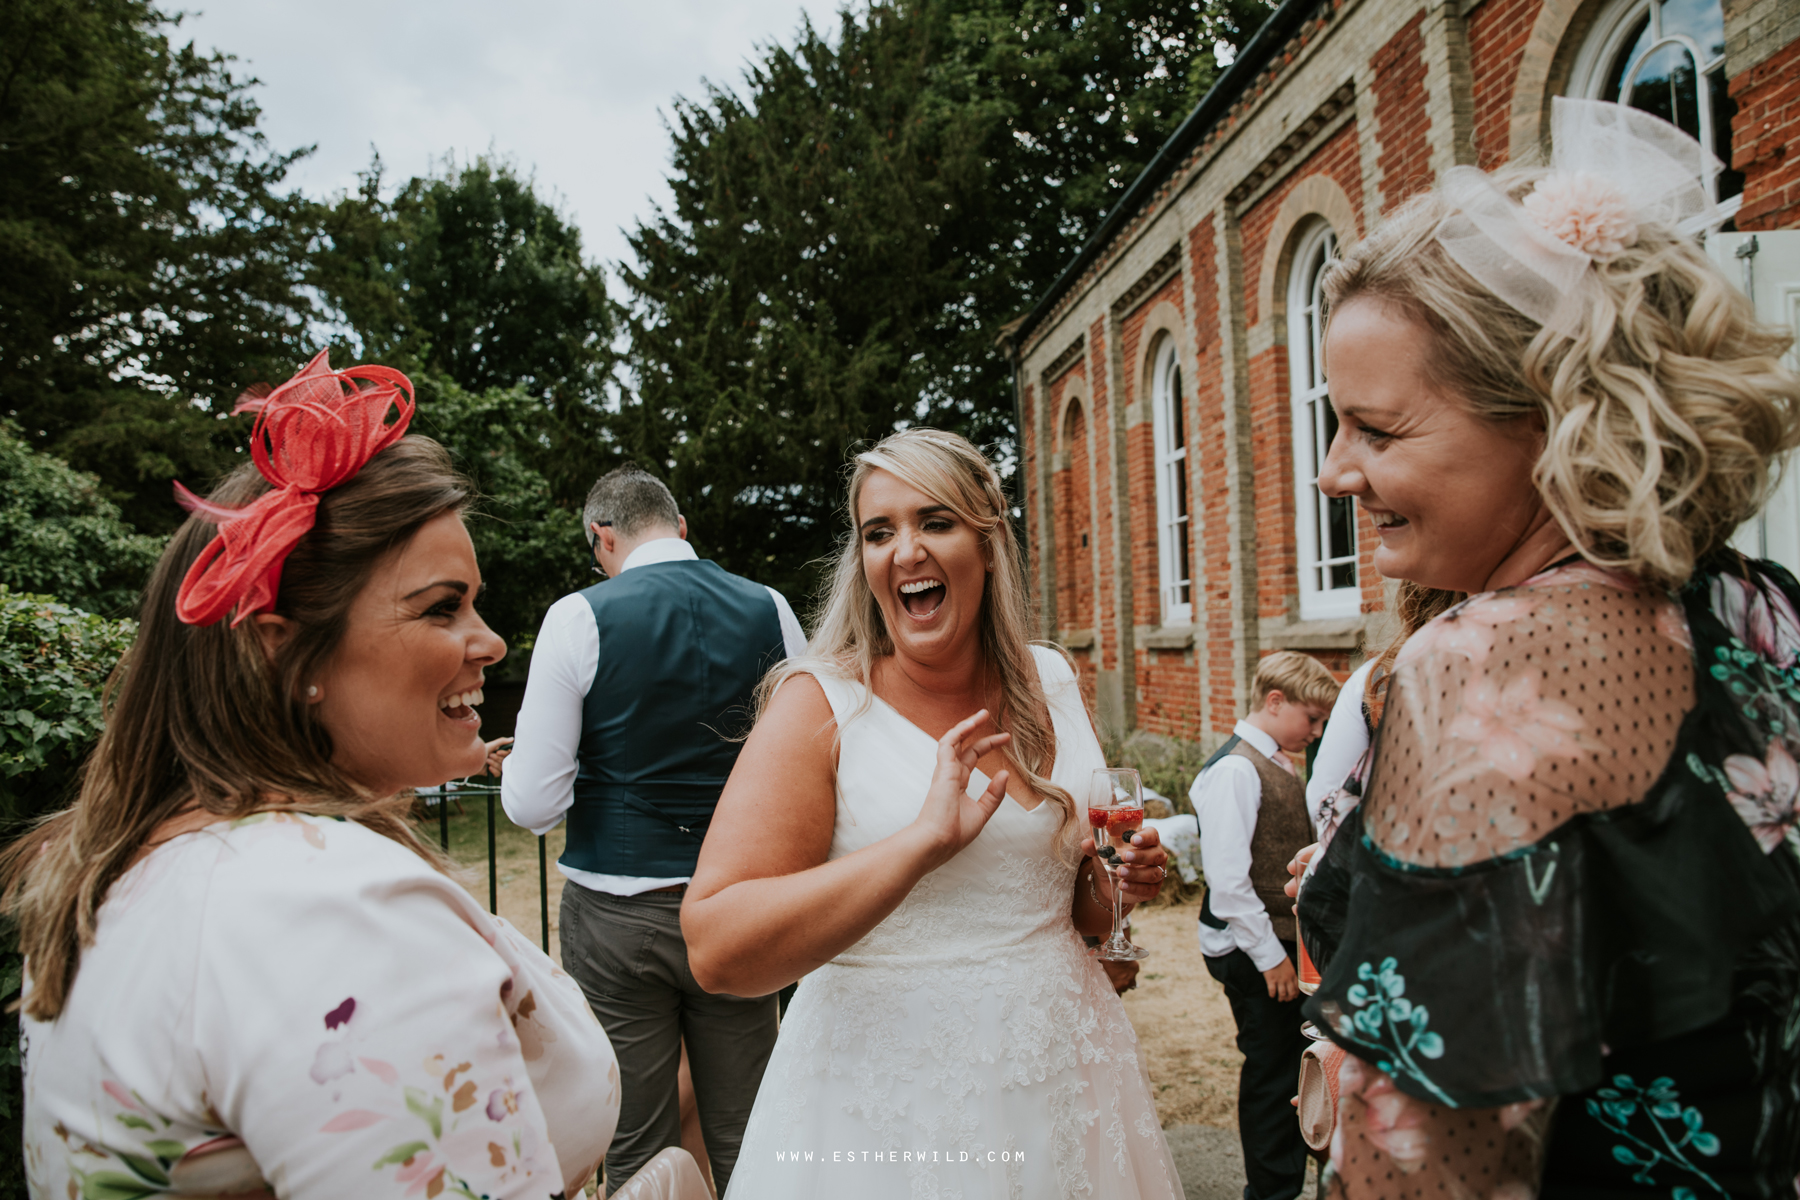 Swaffham_Wedding_Castle_Acre_Norfolk_Esther_Wild_Photographer_Wedding_Photography_3R8A1984.jpg